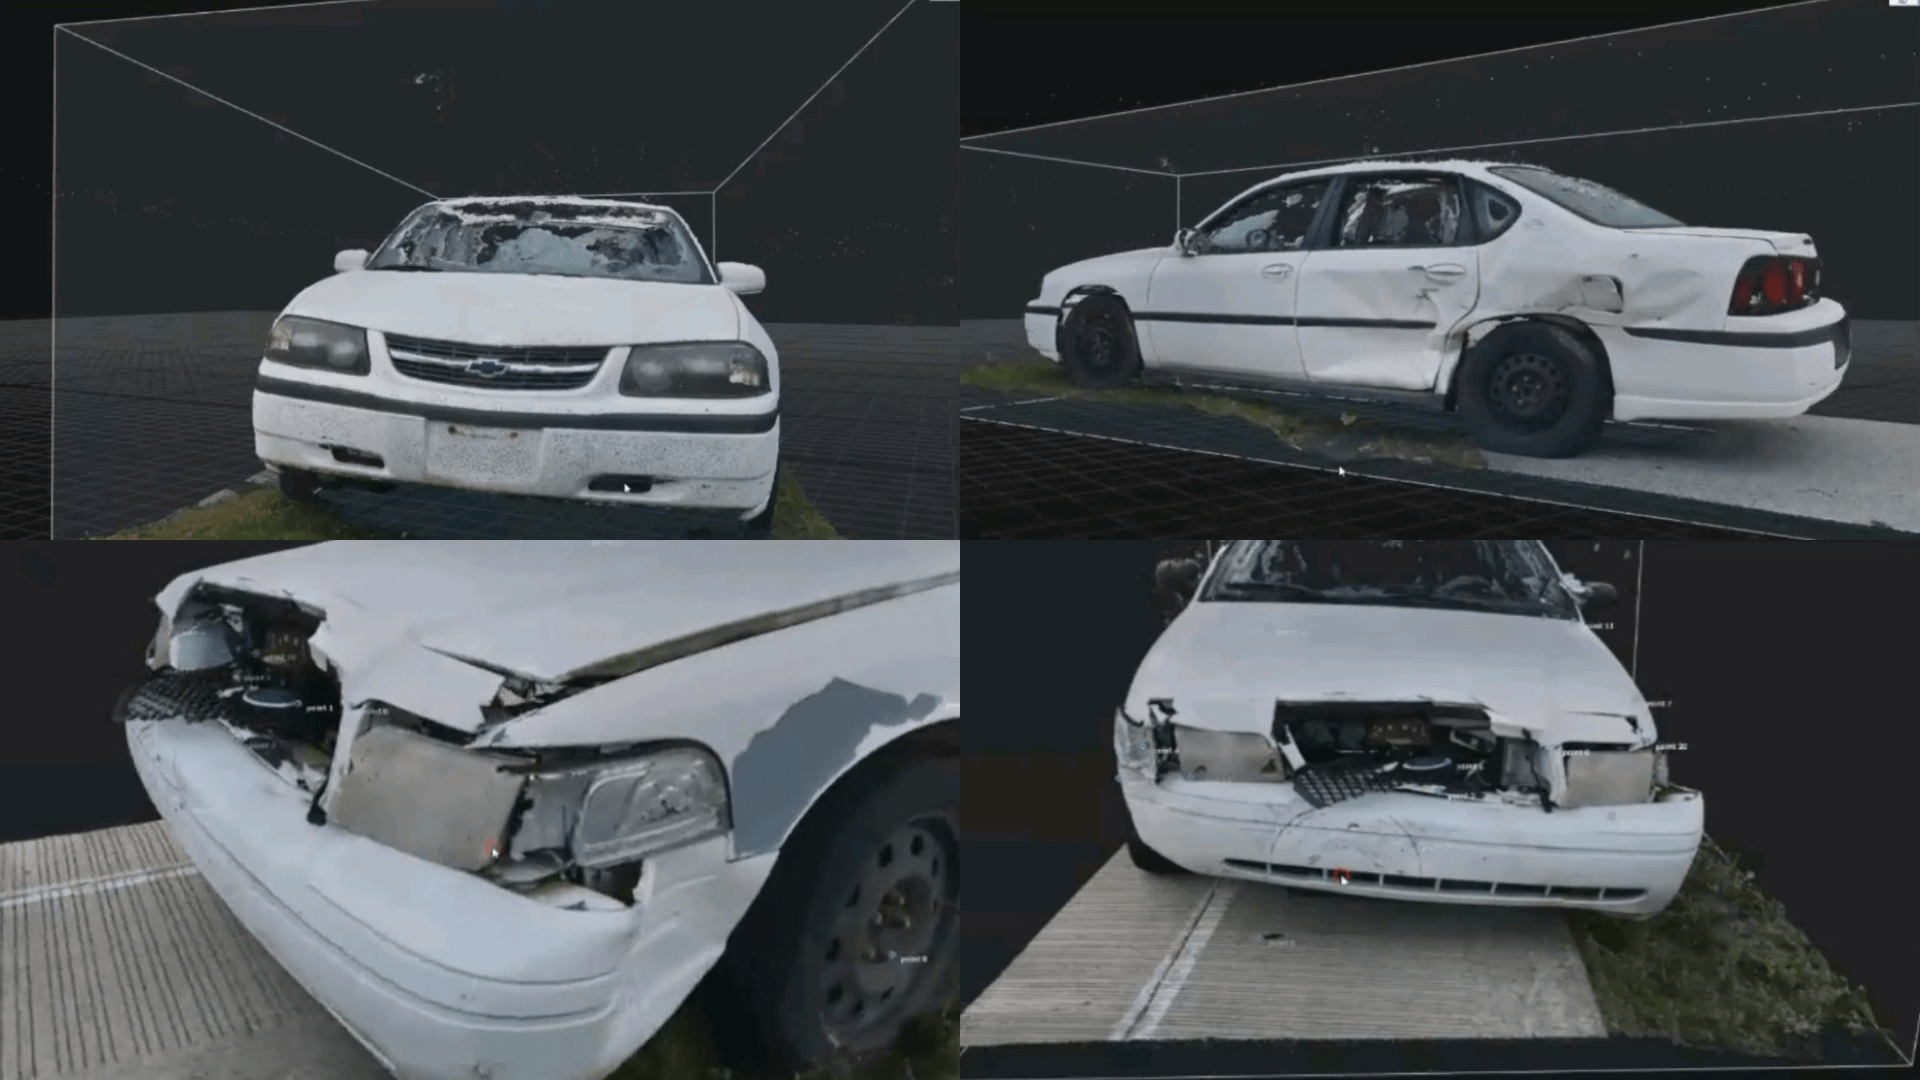 Gain a deep understanding of a crash by viewing vehicle damage up close.